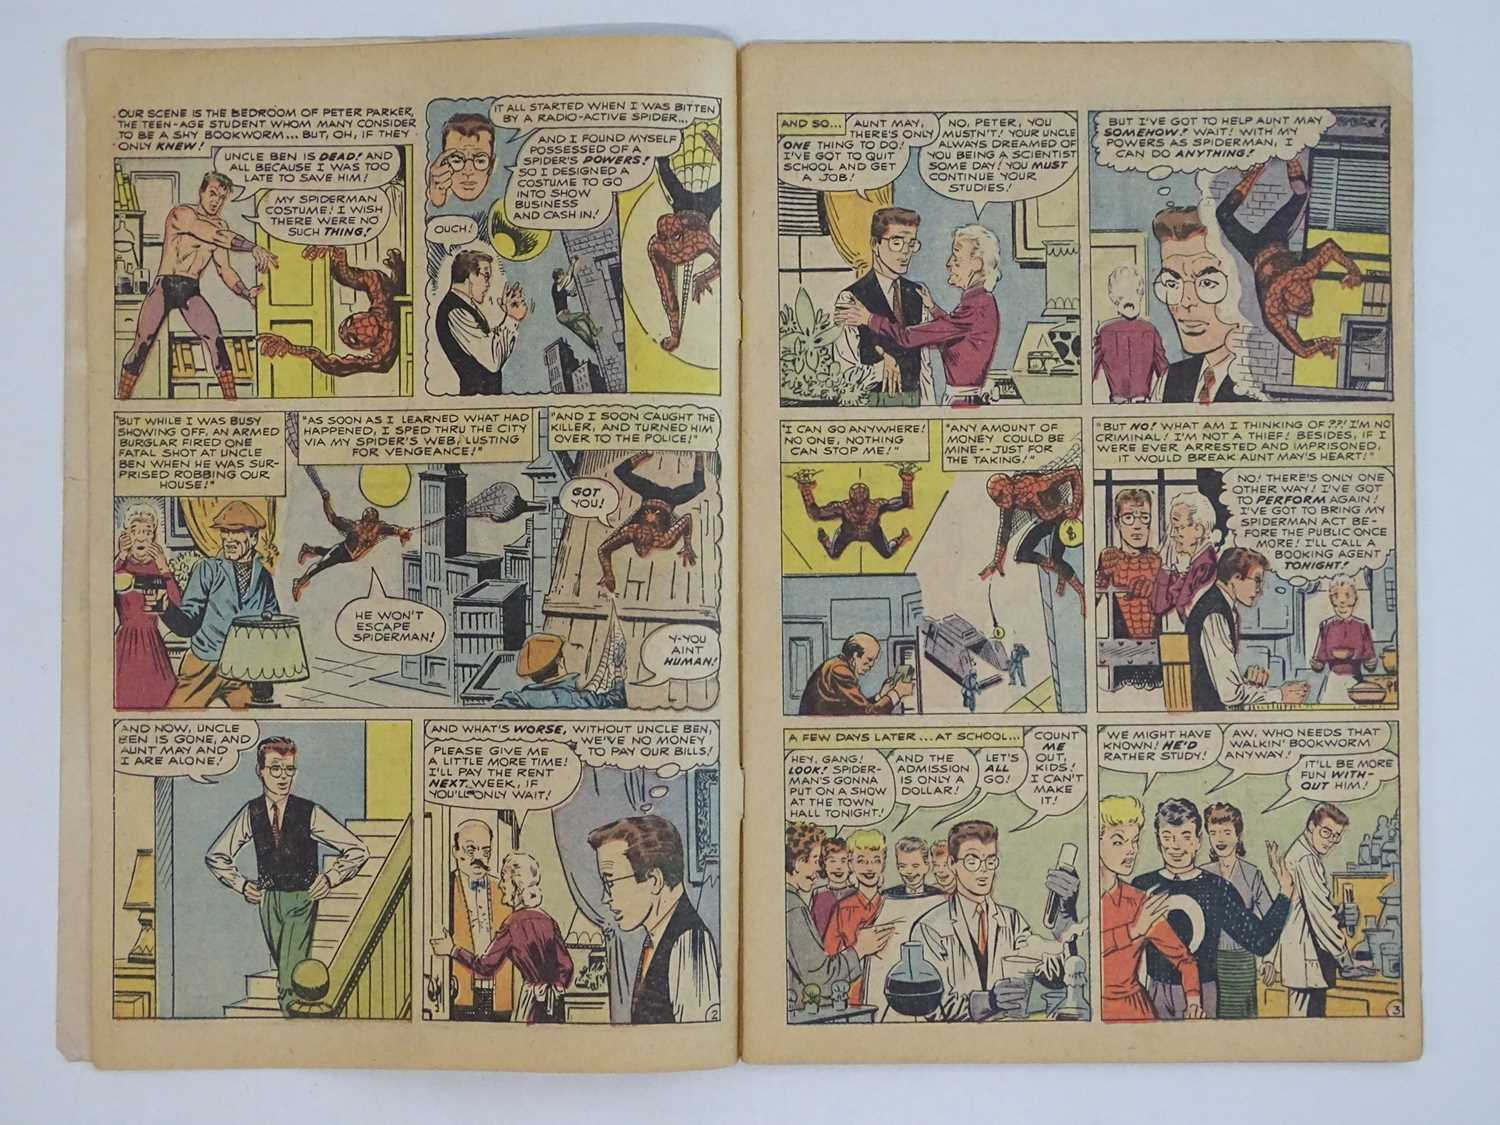 AMAZING SPIDER-MAN #1 - (1963 - MARVEL - UK Price Variant) - First appearance of Spider-Man un his - Image 10 of 27